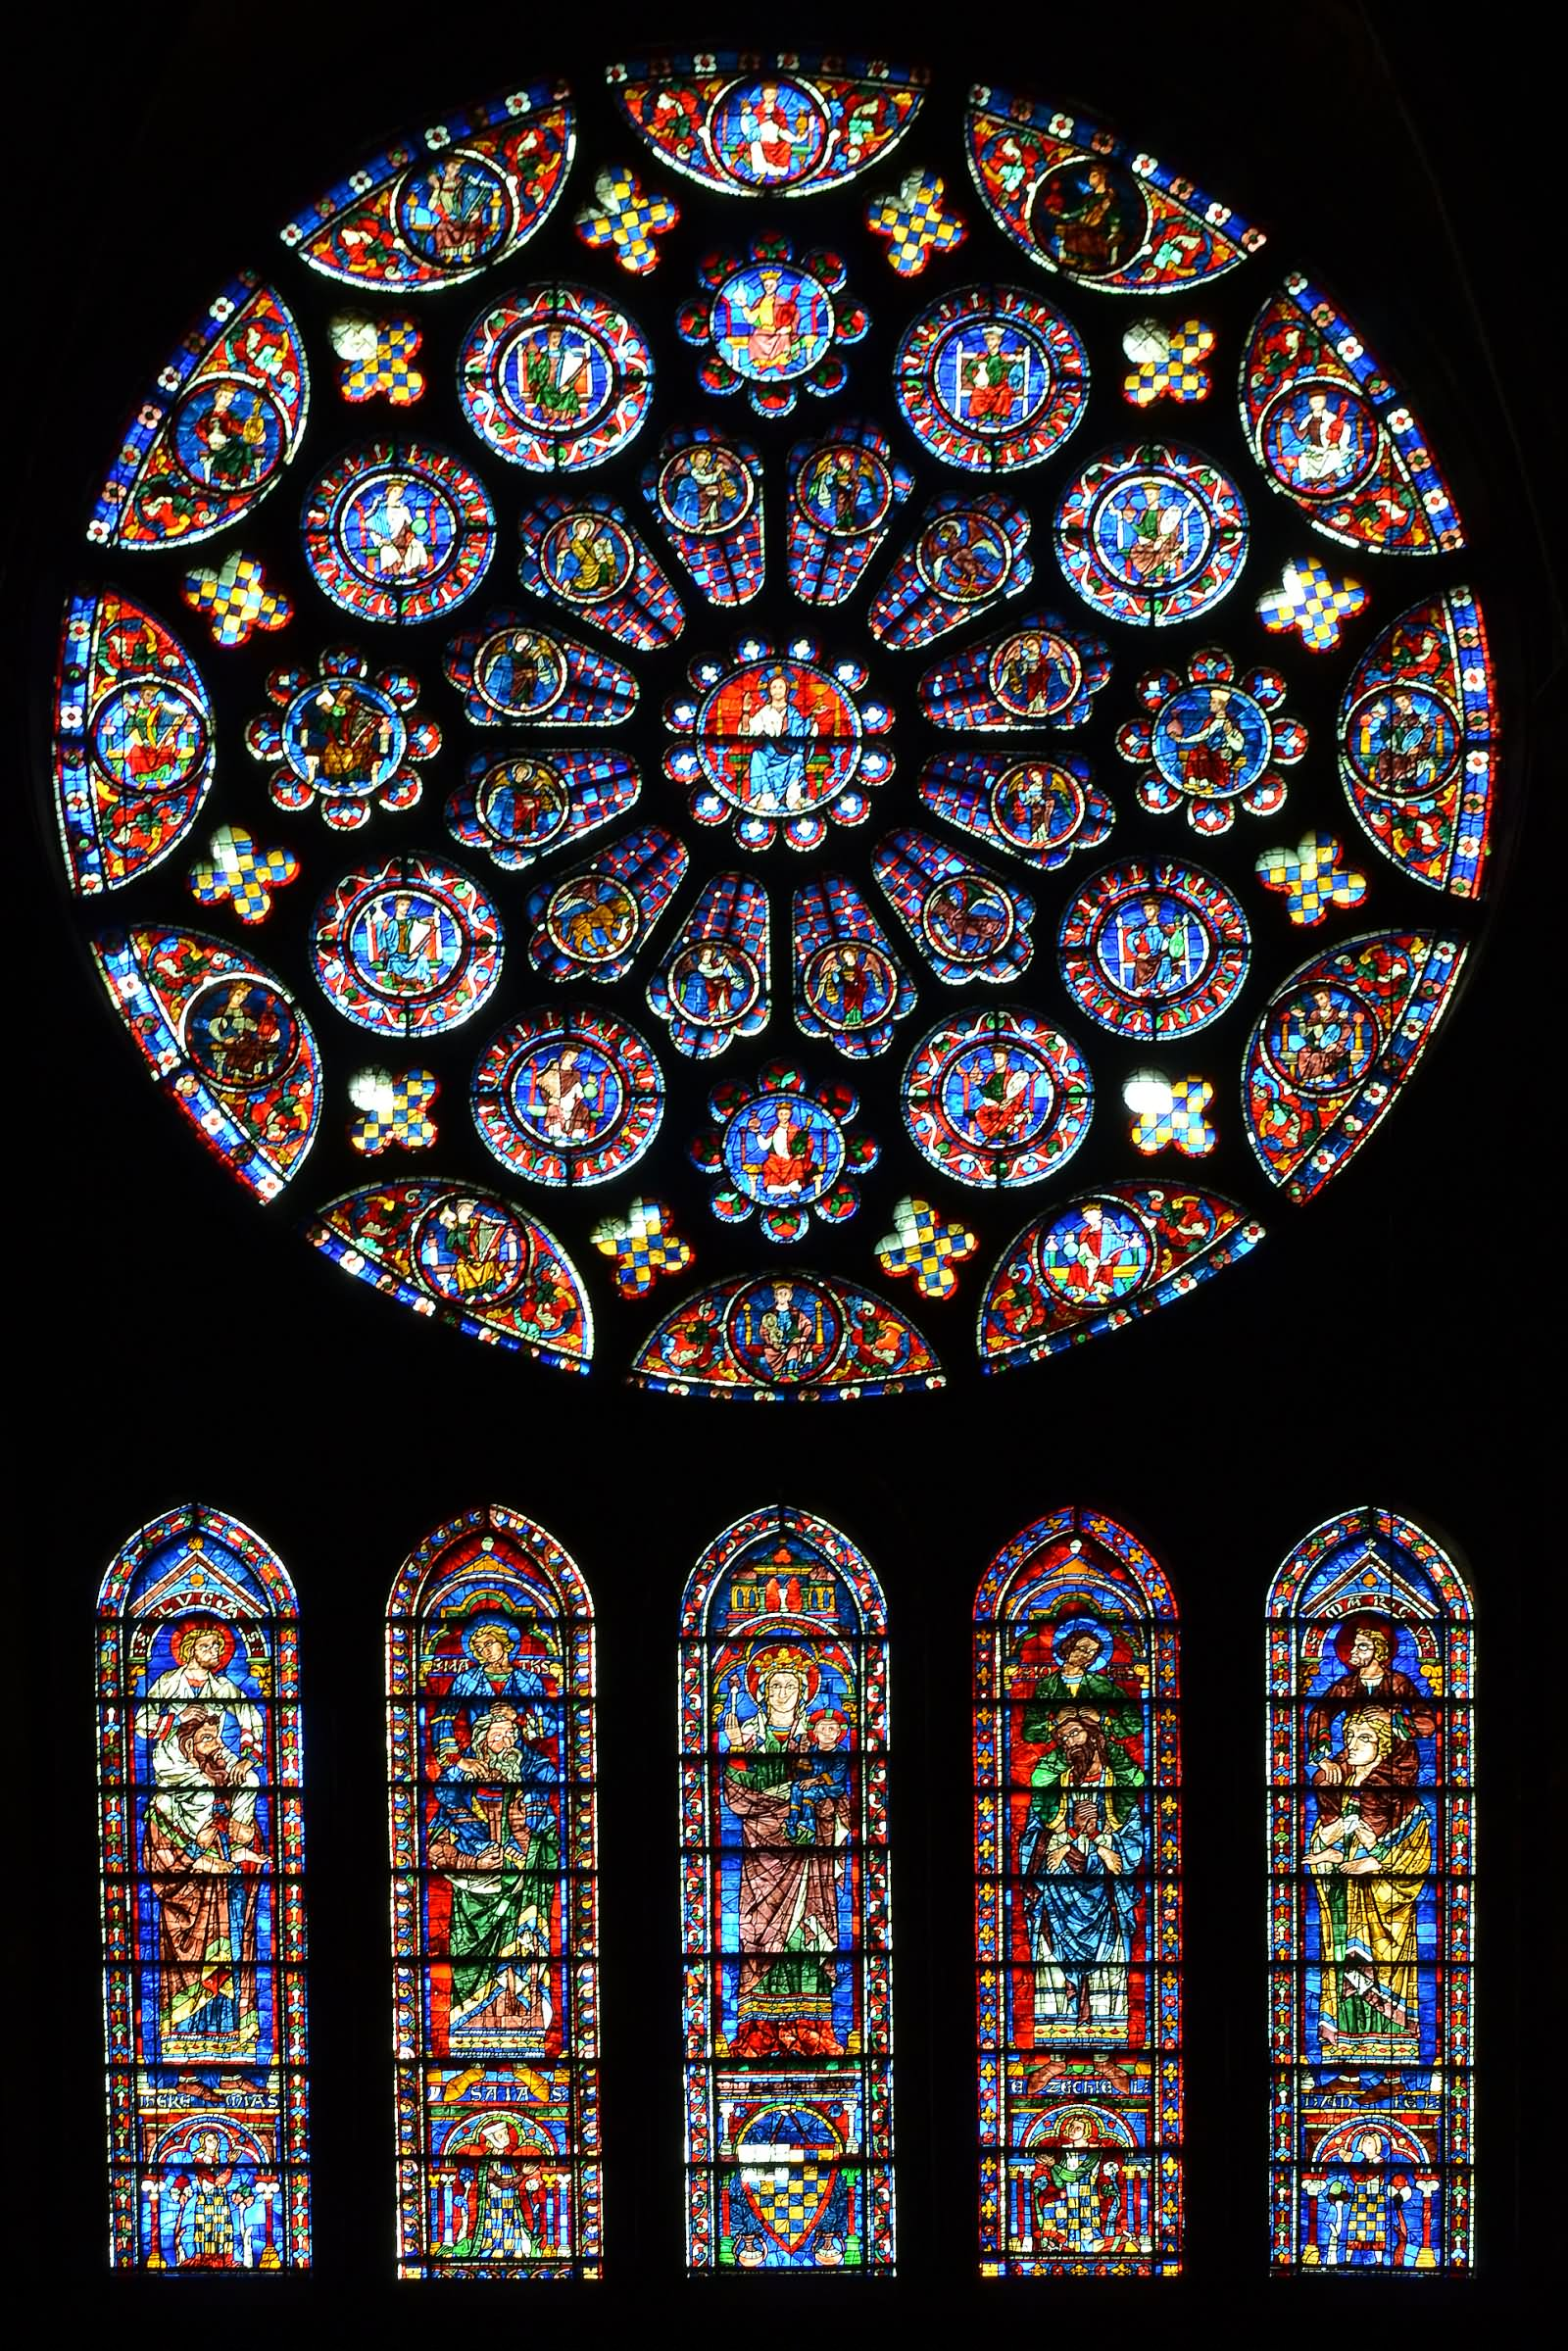 South Rose Window Notre Dame De Paris